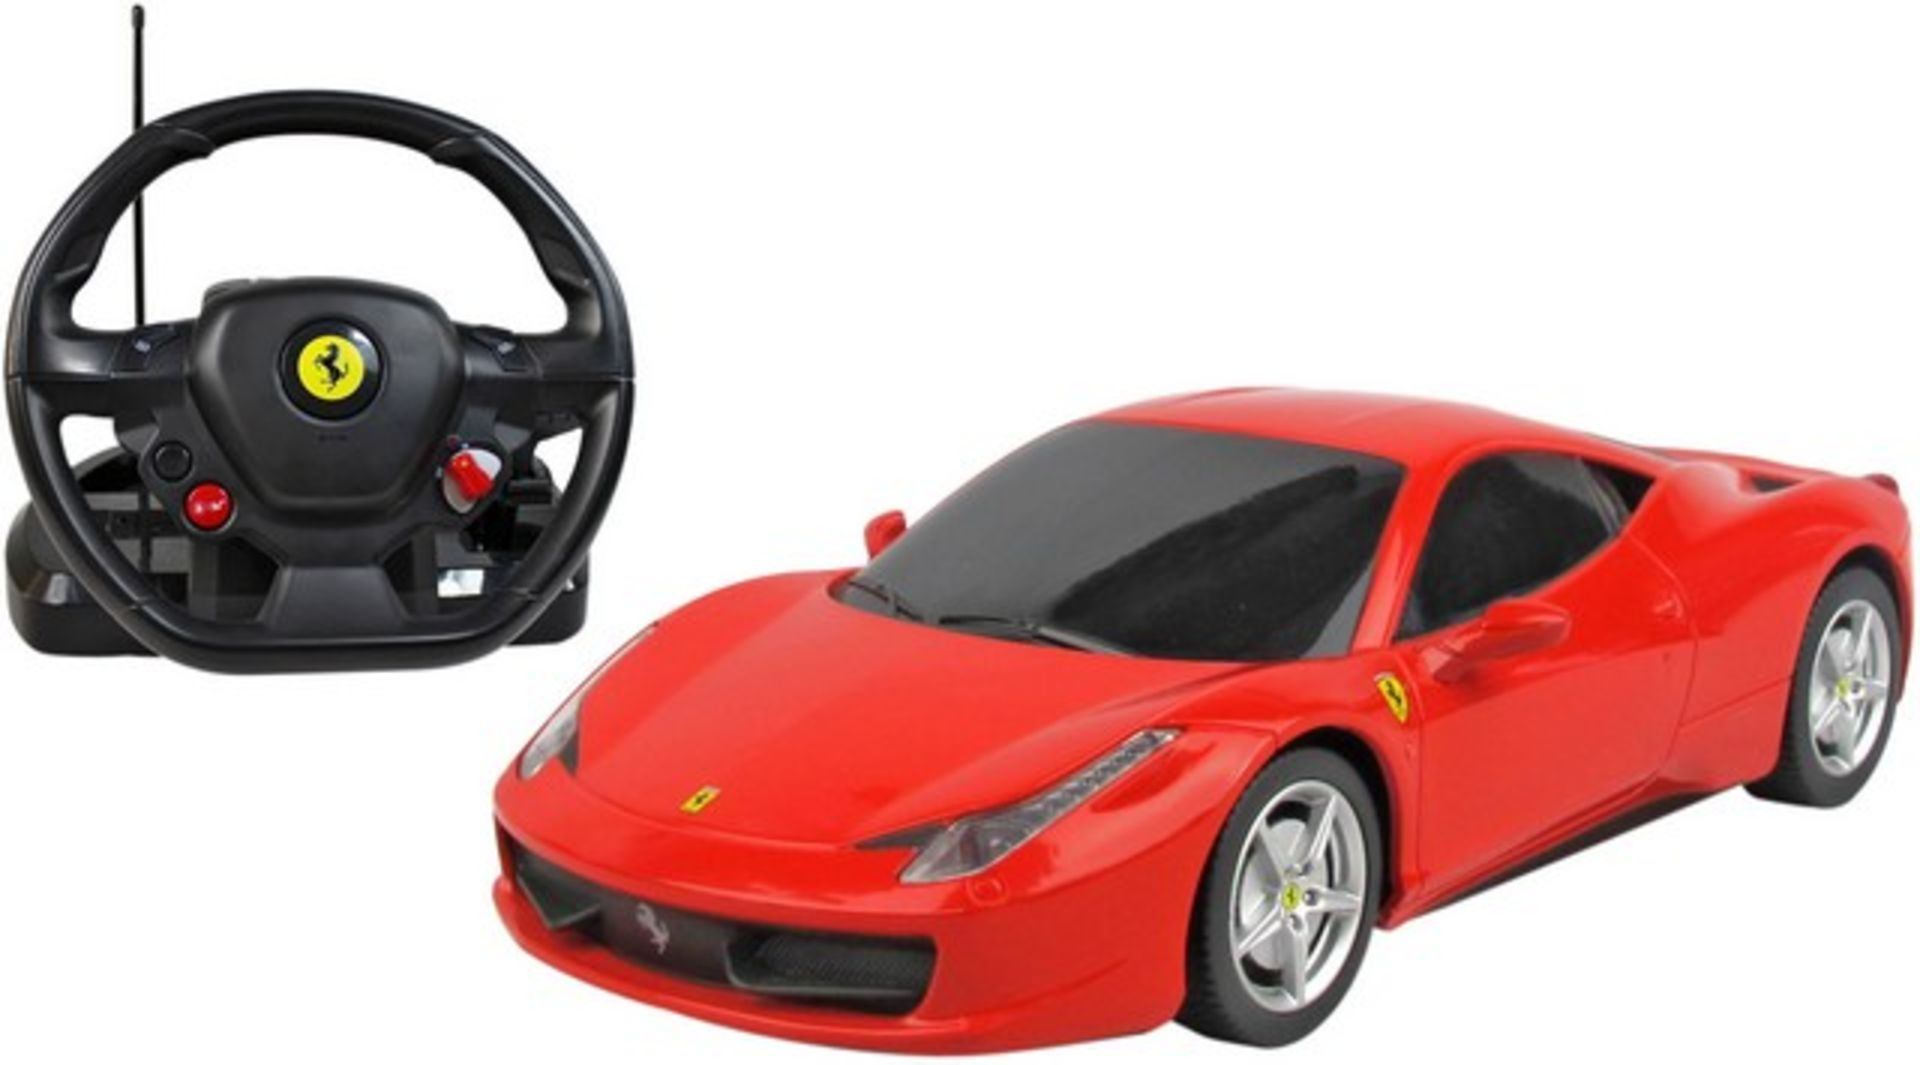 Lot 12055 - V Brand New 1/18 RC Ferrari 458 Italia With Sound and Steering Wheel Controller - Official